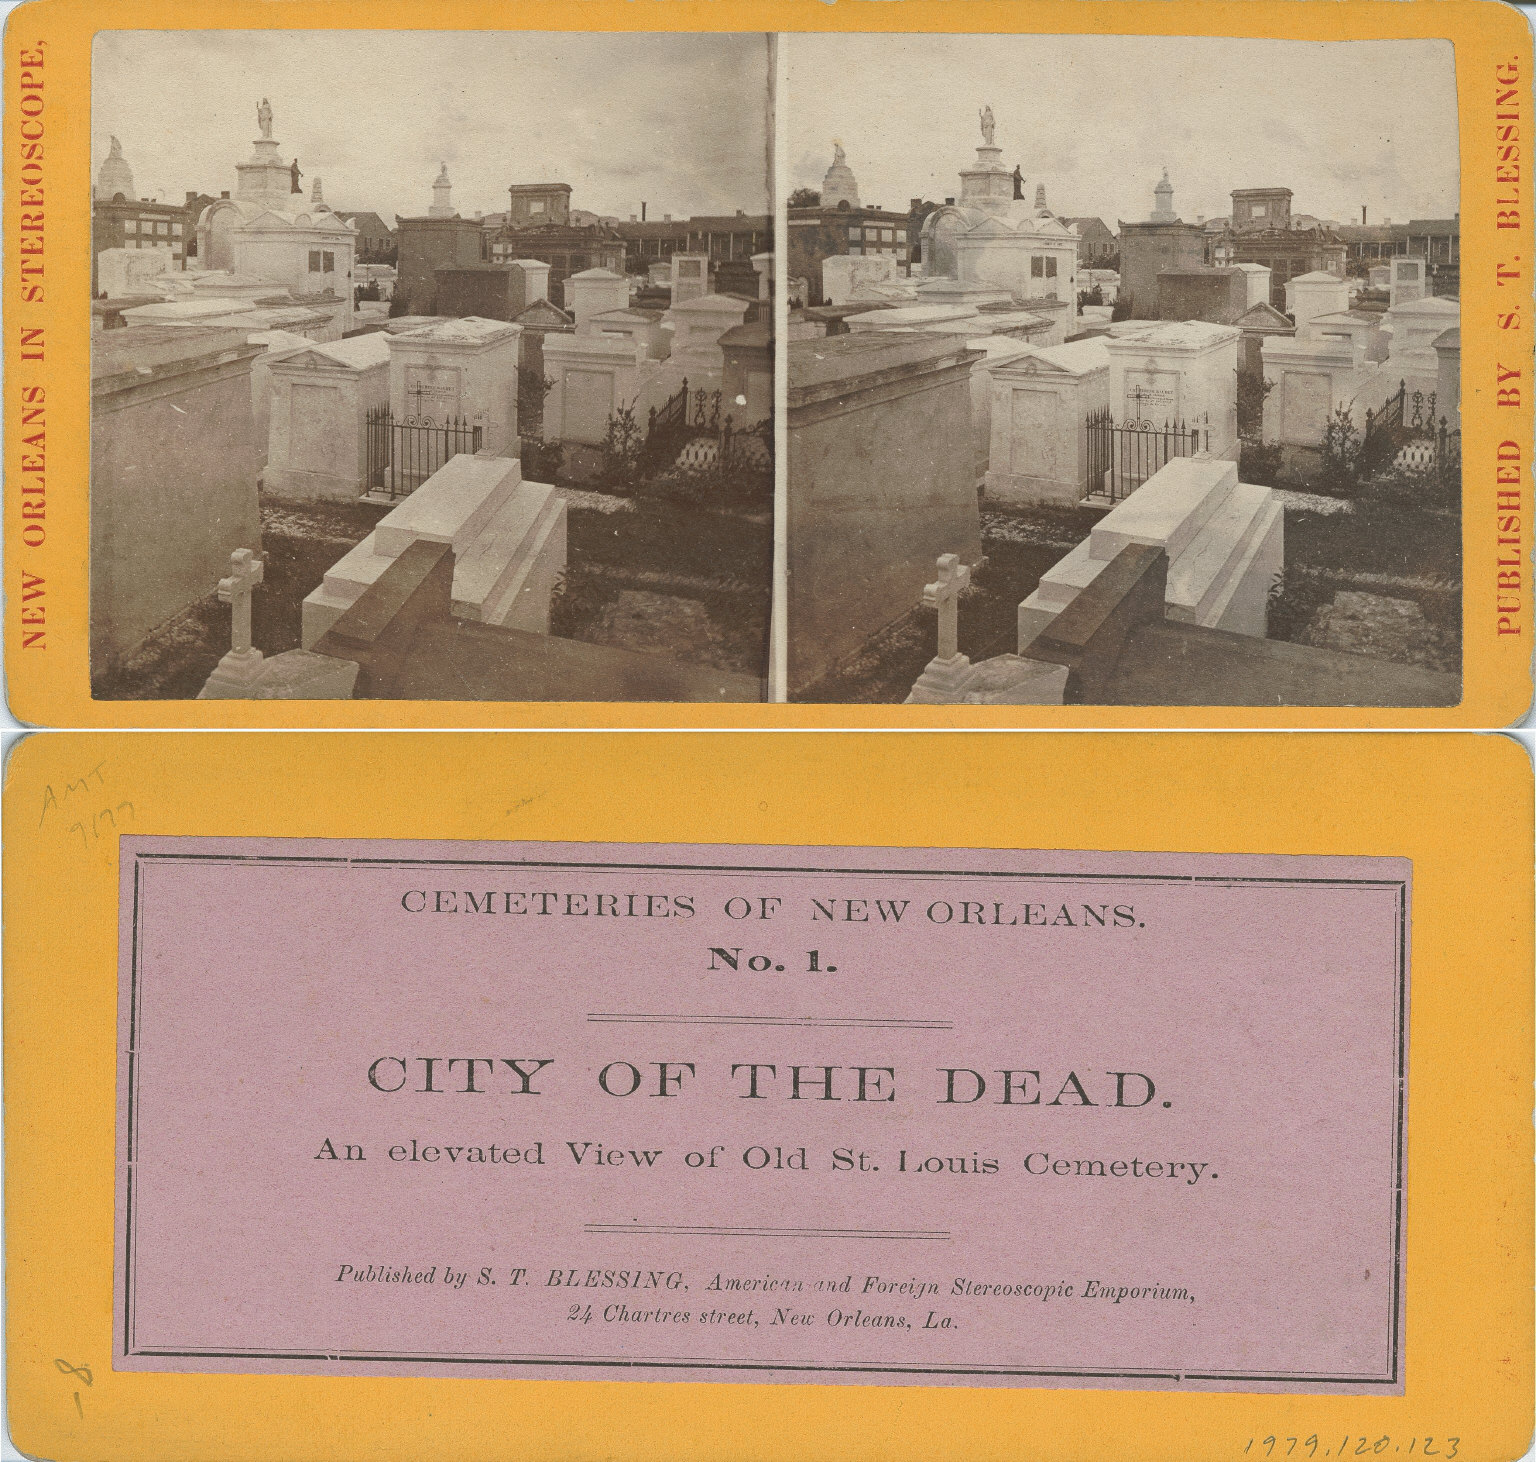 City of the dead an elevated view of old St. Louis Cemetery